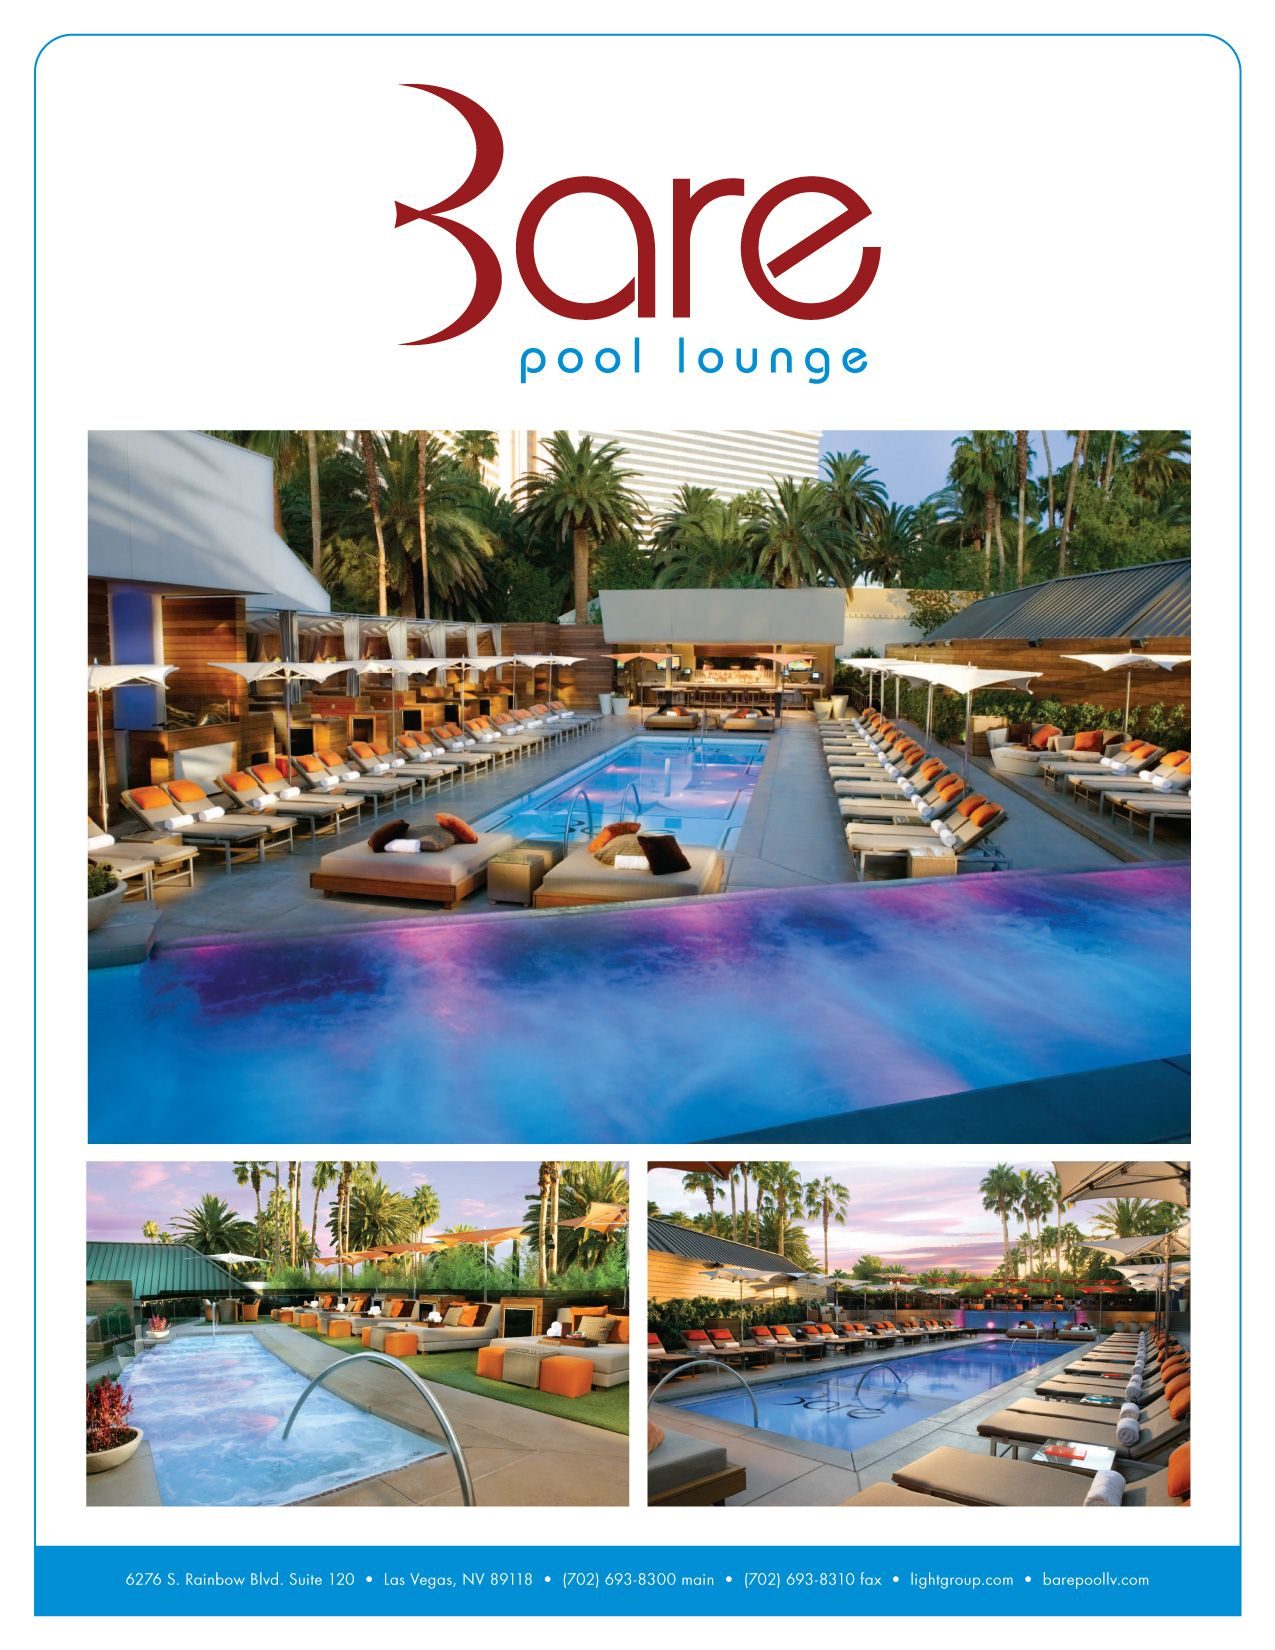 Bare Pool Lounge Featured on Vegas Vegas Pinterest